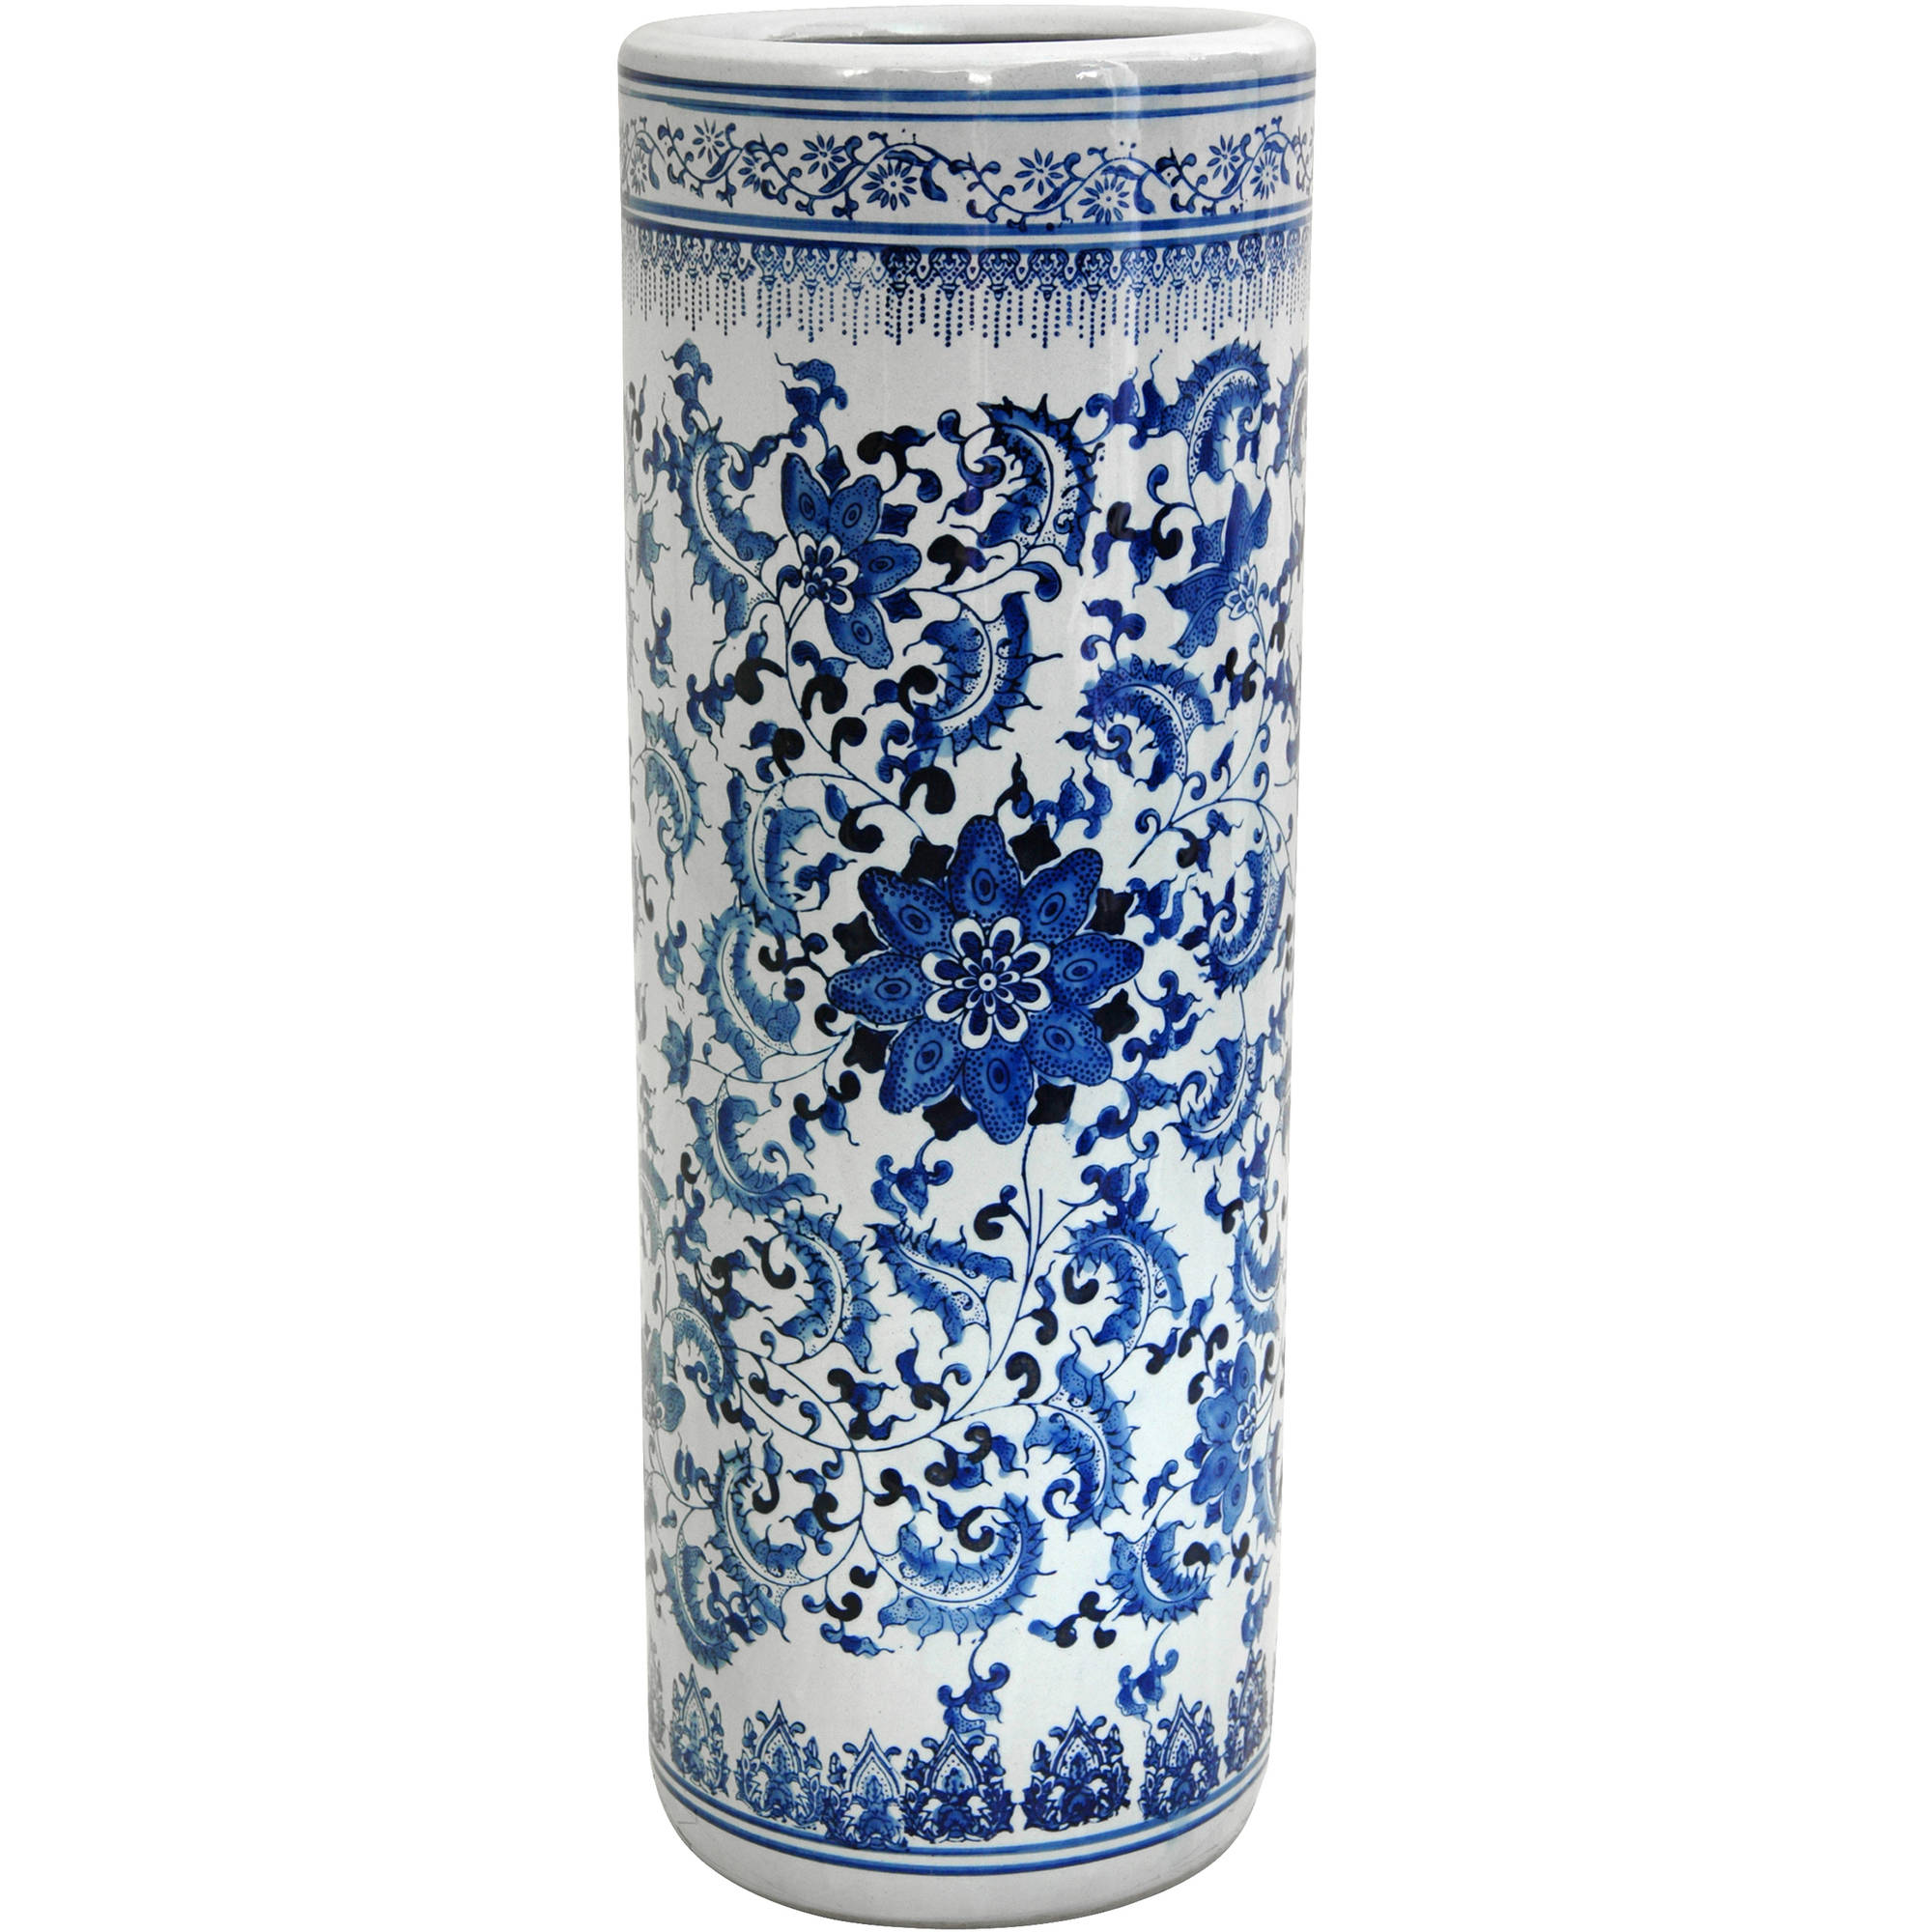 "24"" Floral Blue & White Porcelain Umbrella Stand by Oriental Furniture"